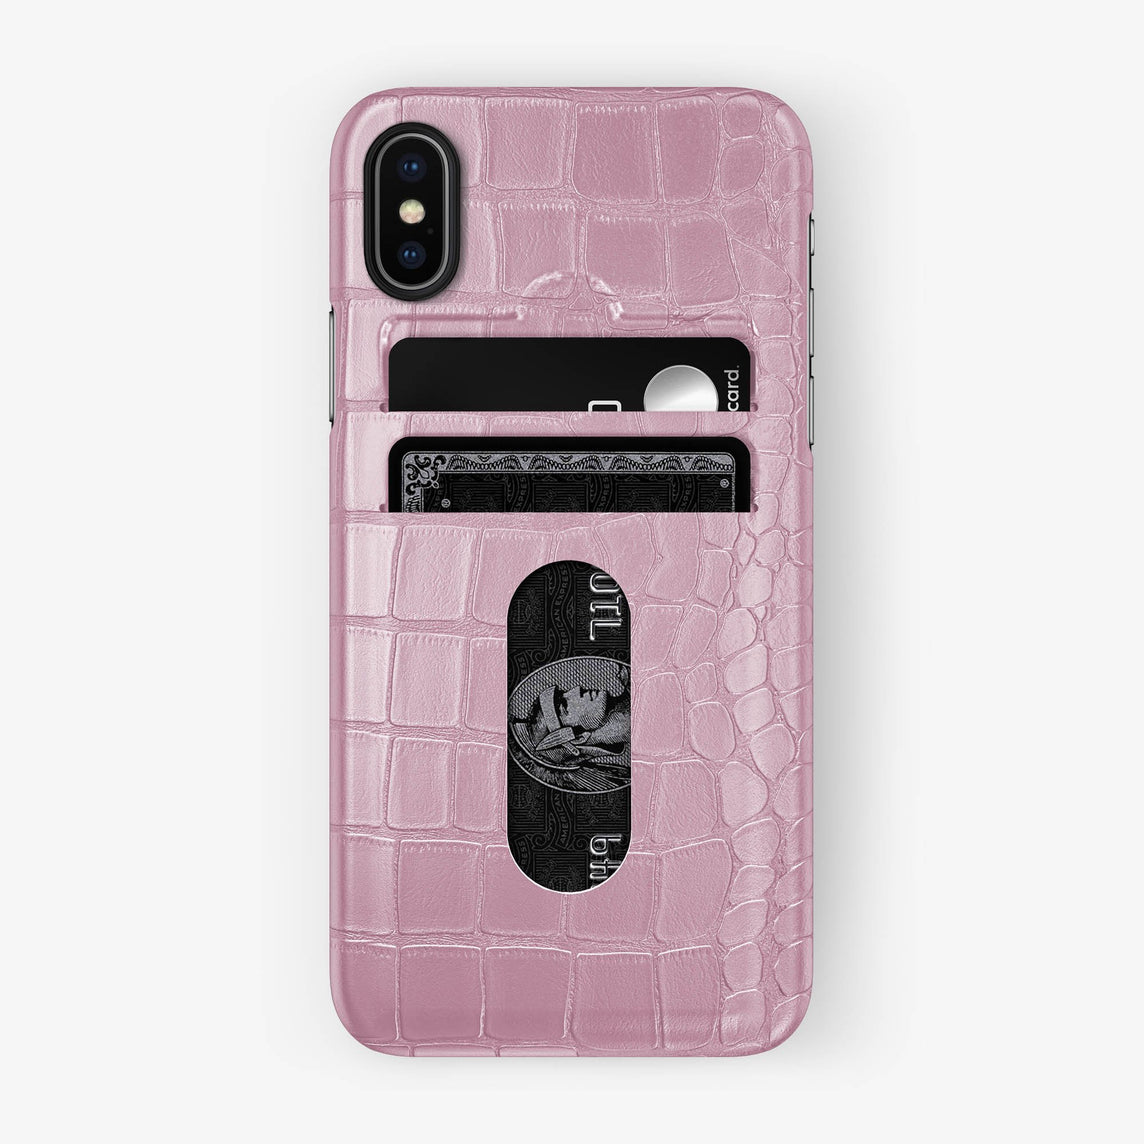 Alligator Card Holder Case iPhone Xs | Pink - Black - Hadoro